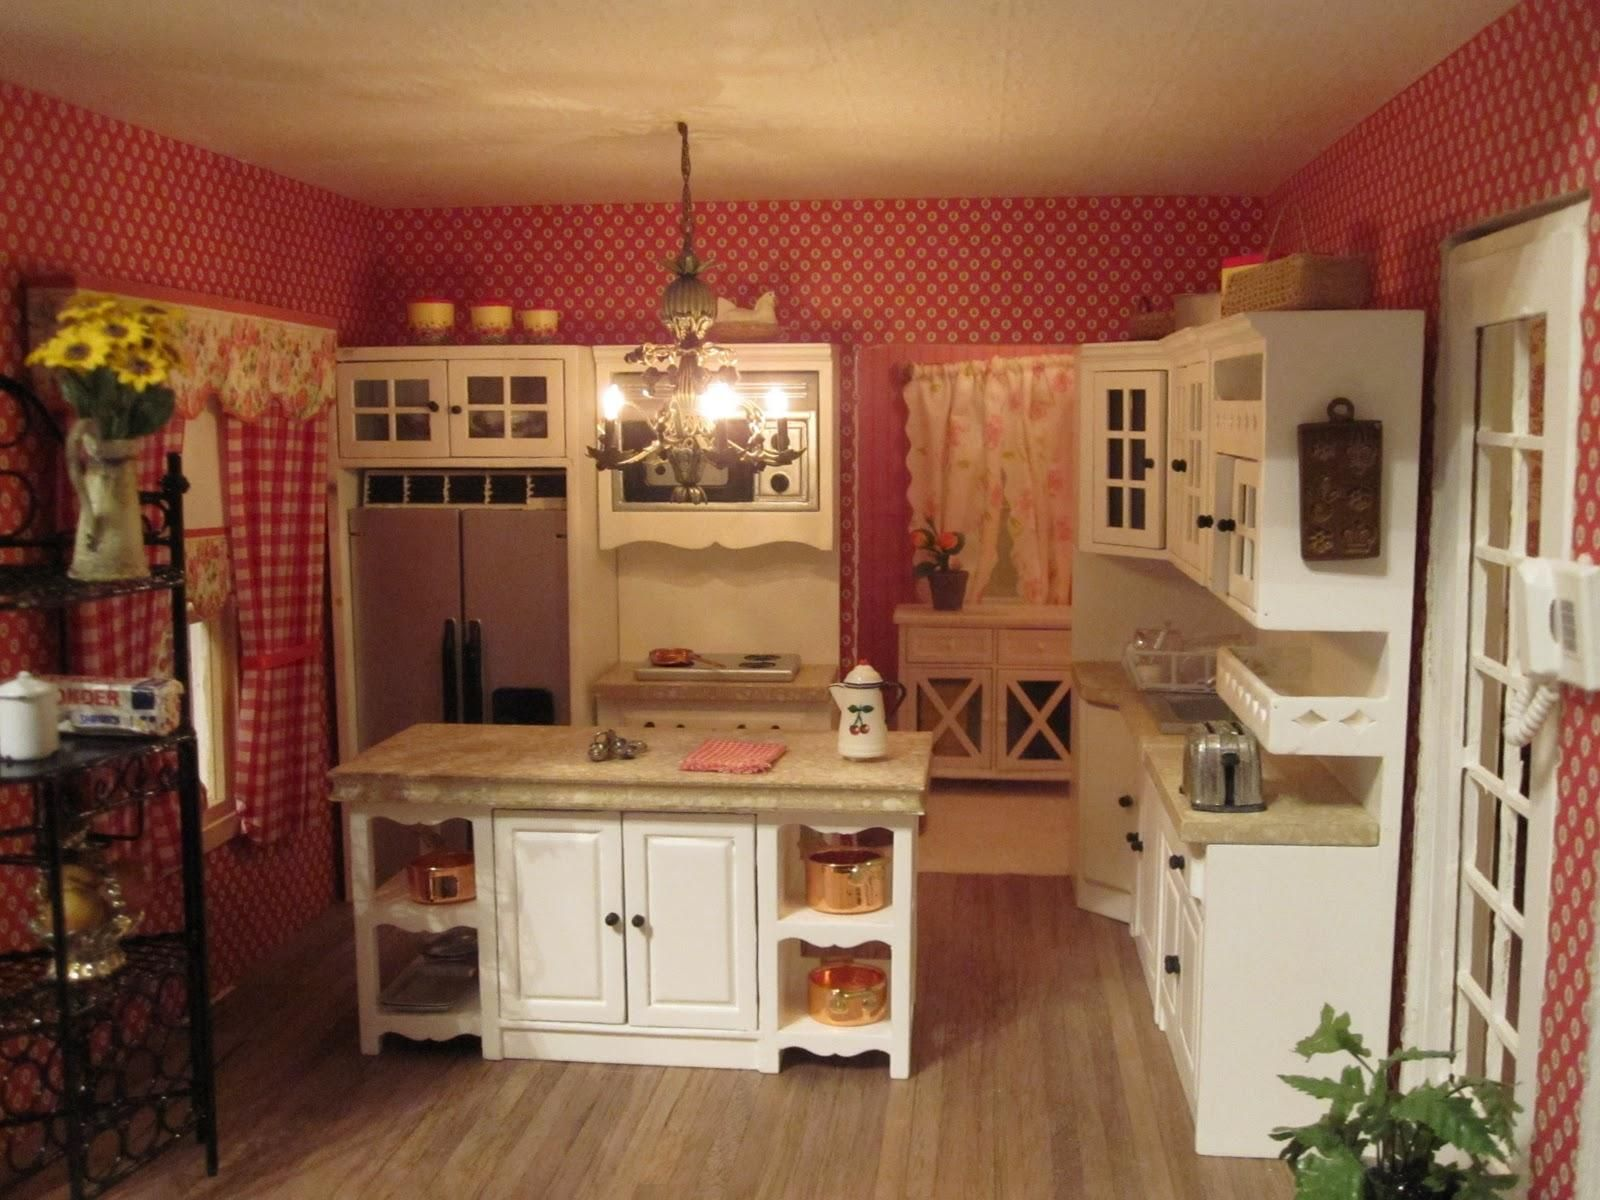 Pink And Black Kitchen Decor Traditional Kitchen Design With Wooden Flooring And White